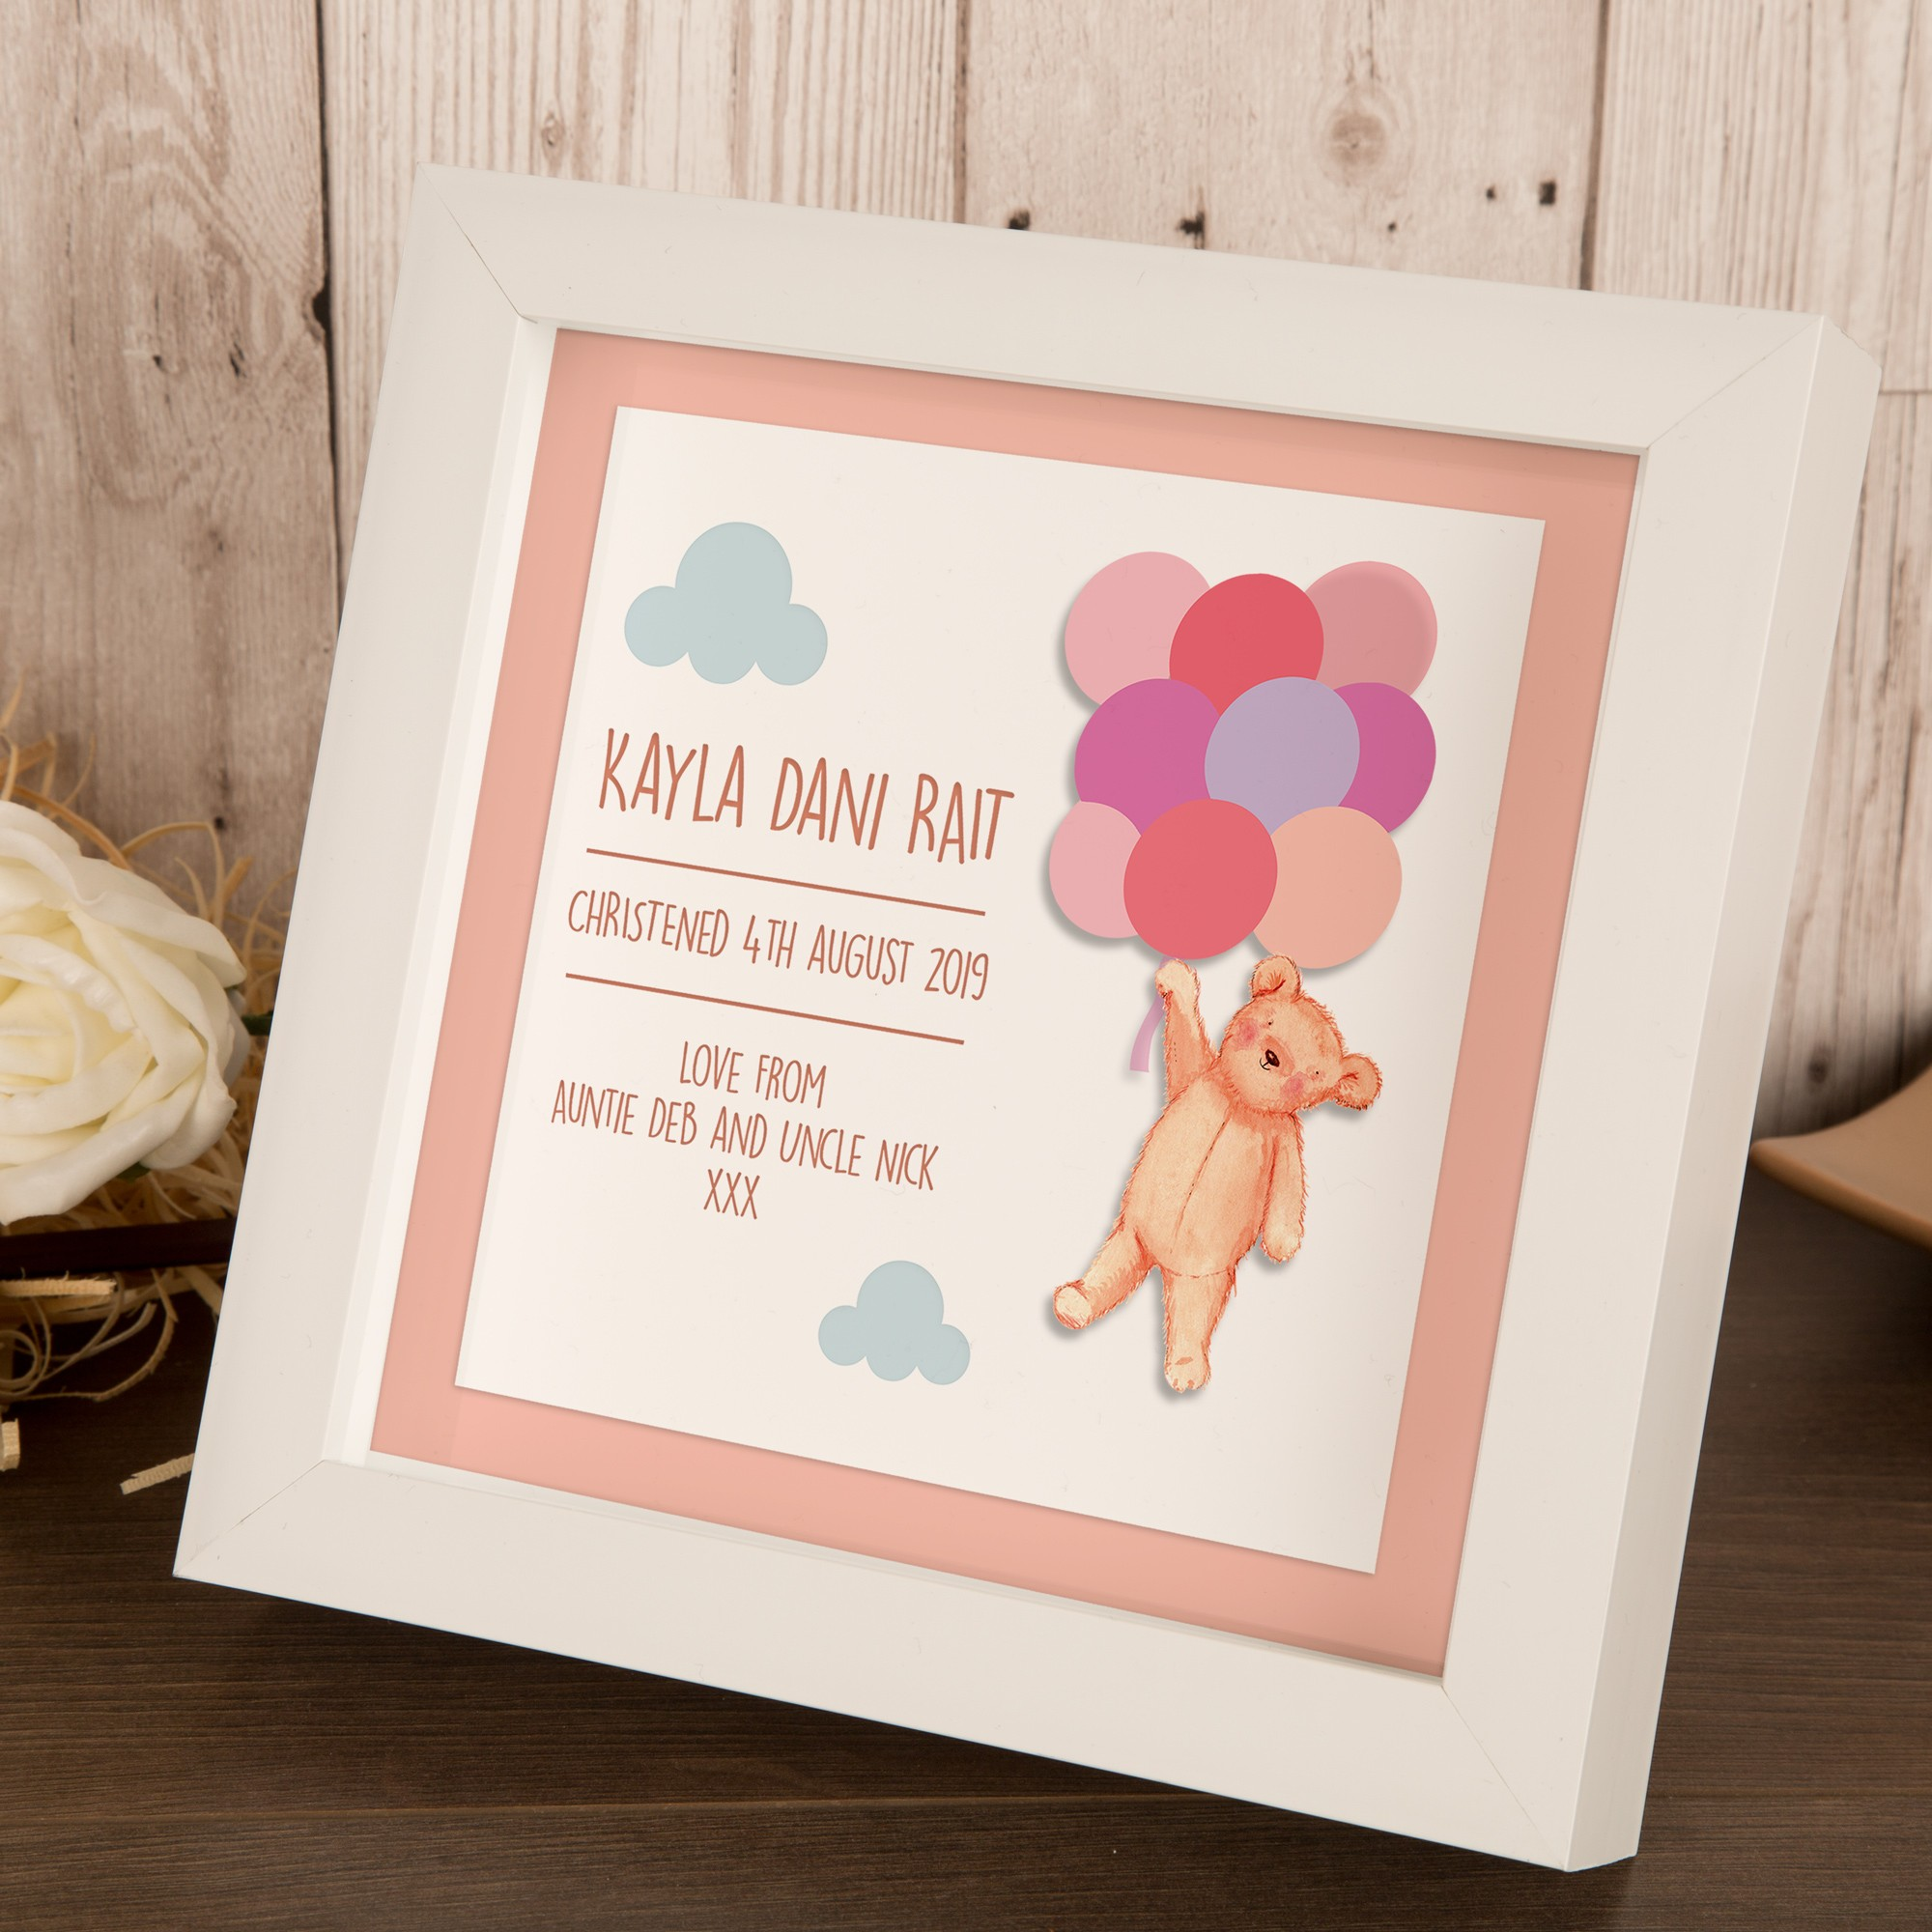 Personalised Teddy with Balloons 3D Box Frame for a Little Girl.